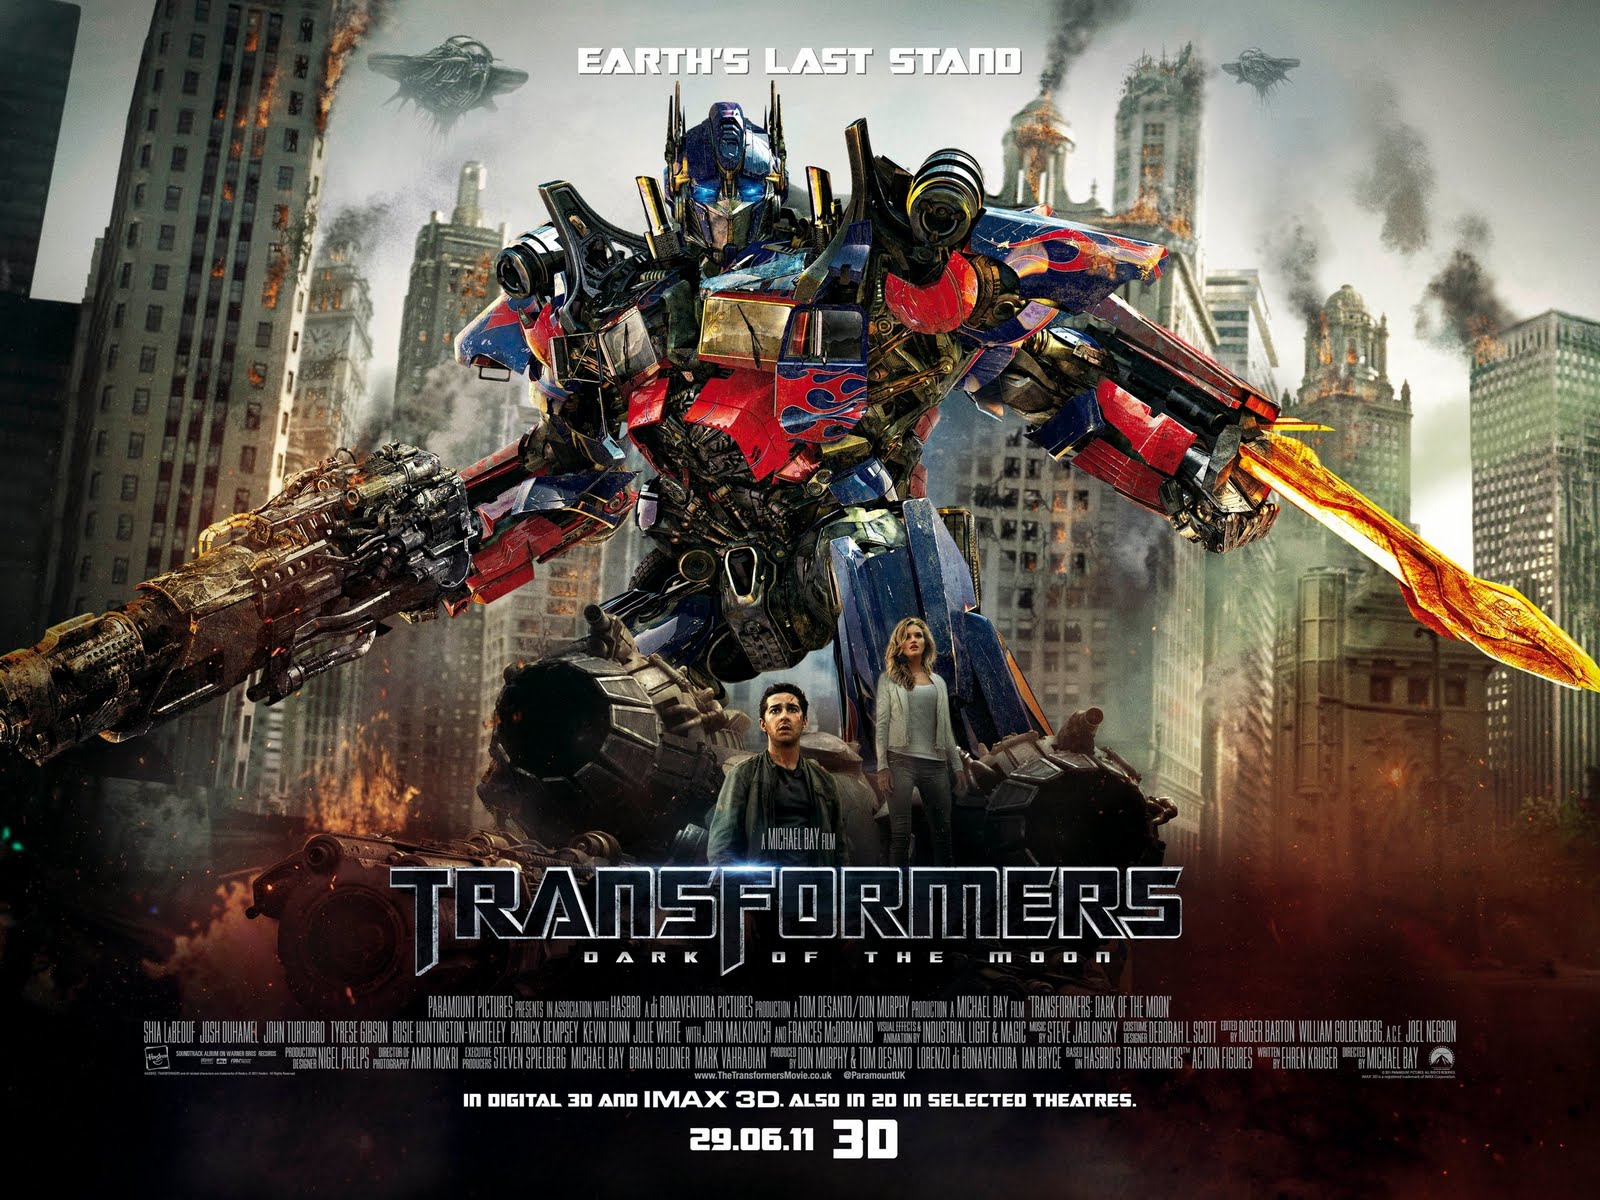 Transformers: Dark of the Moon in 3D 2011 Full Length Movie